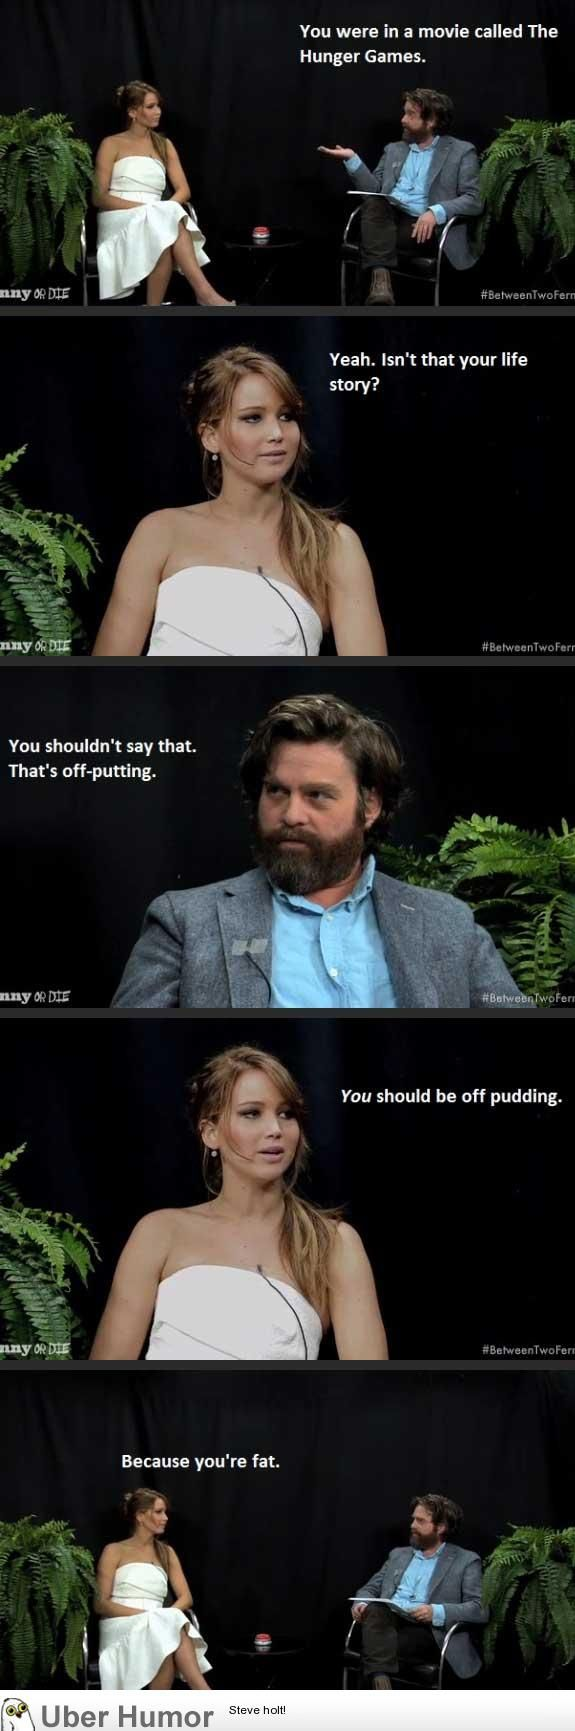 Between Two Ferns with Jennifer Lawrence